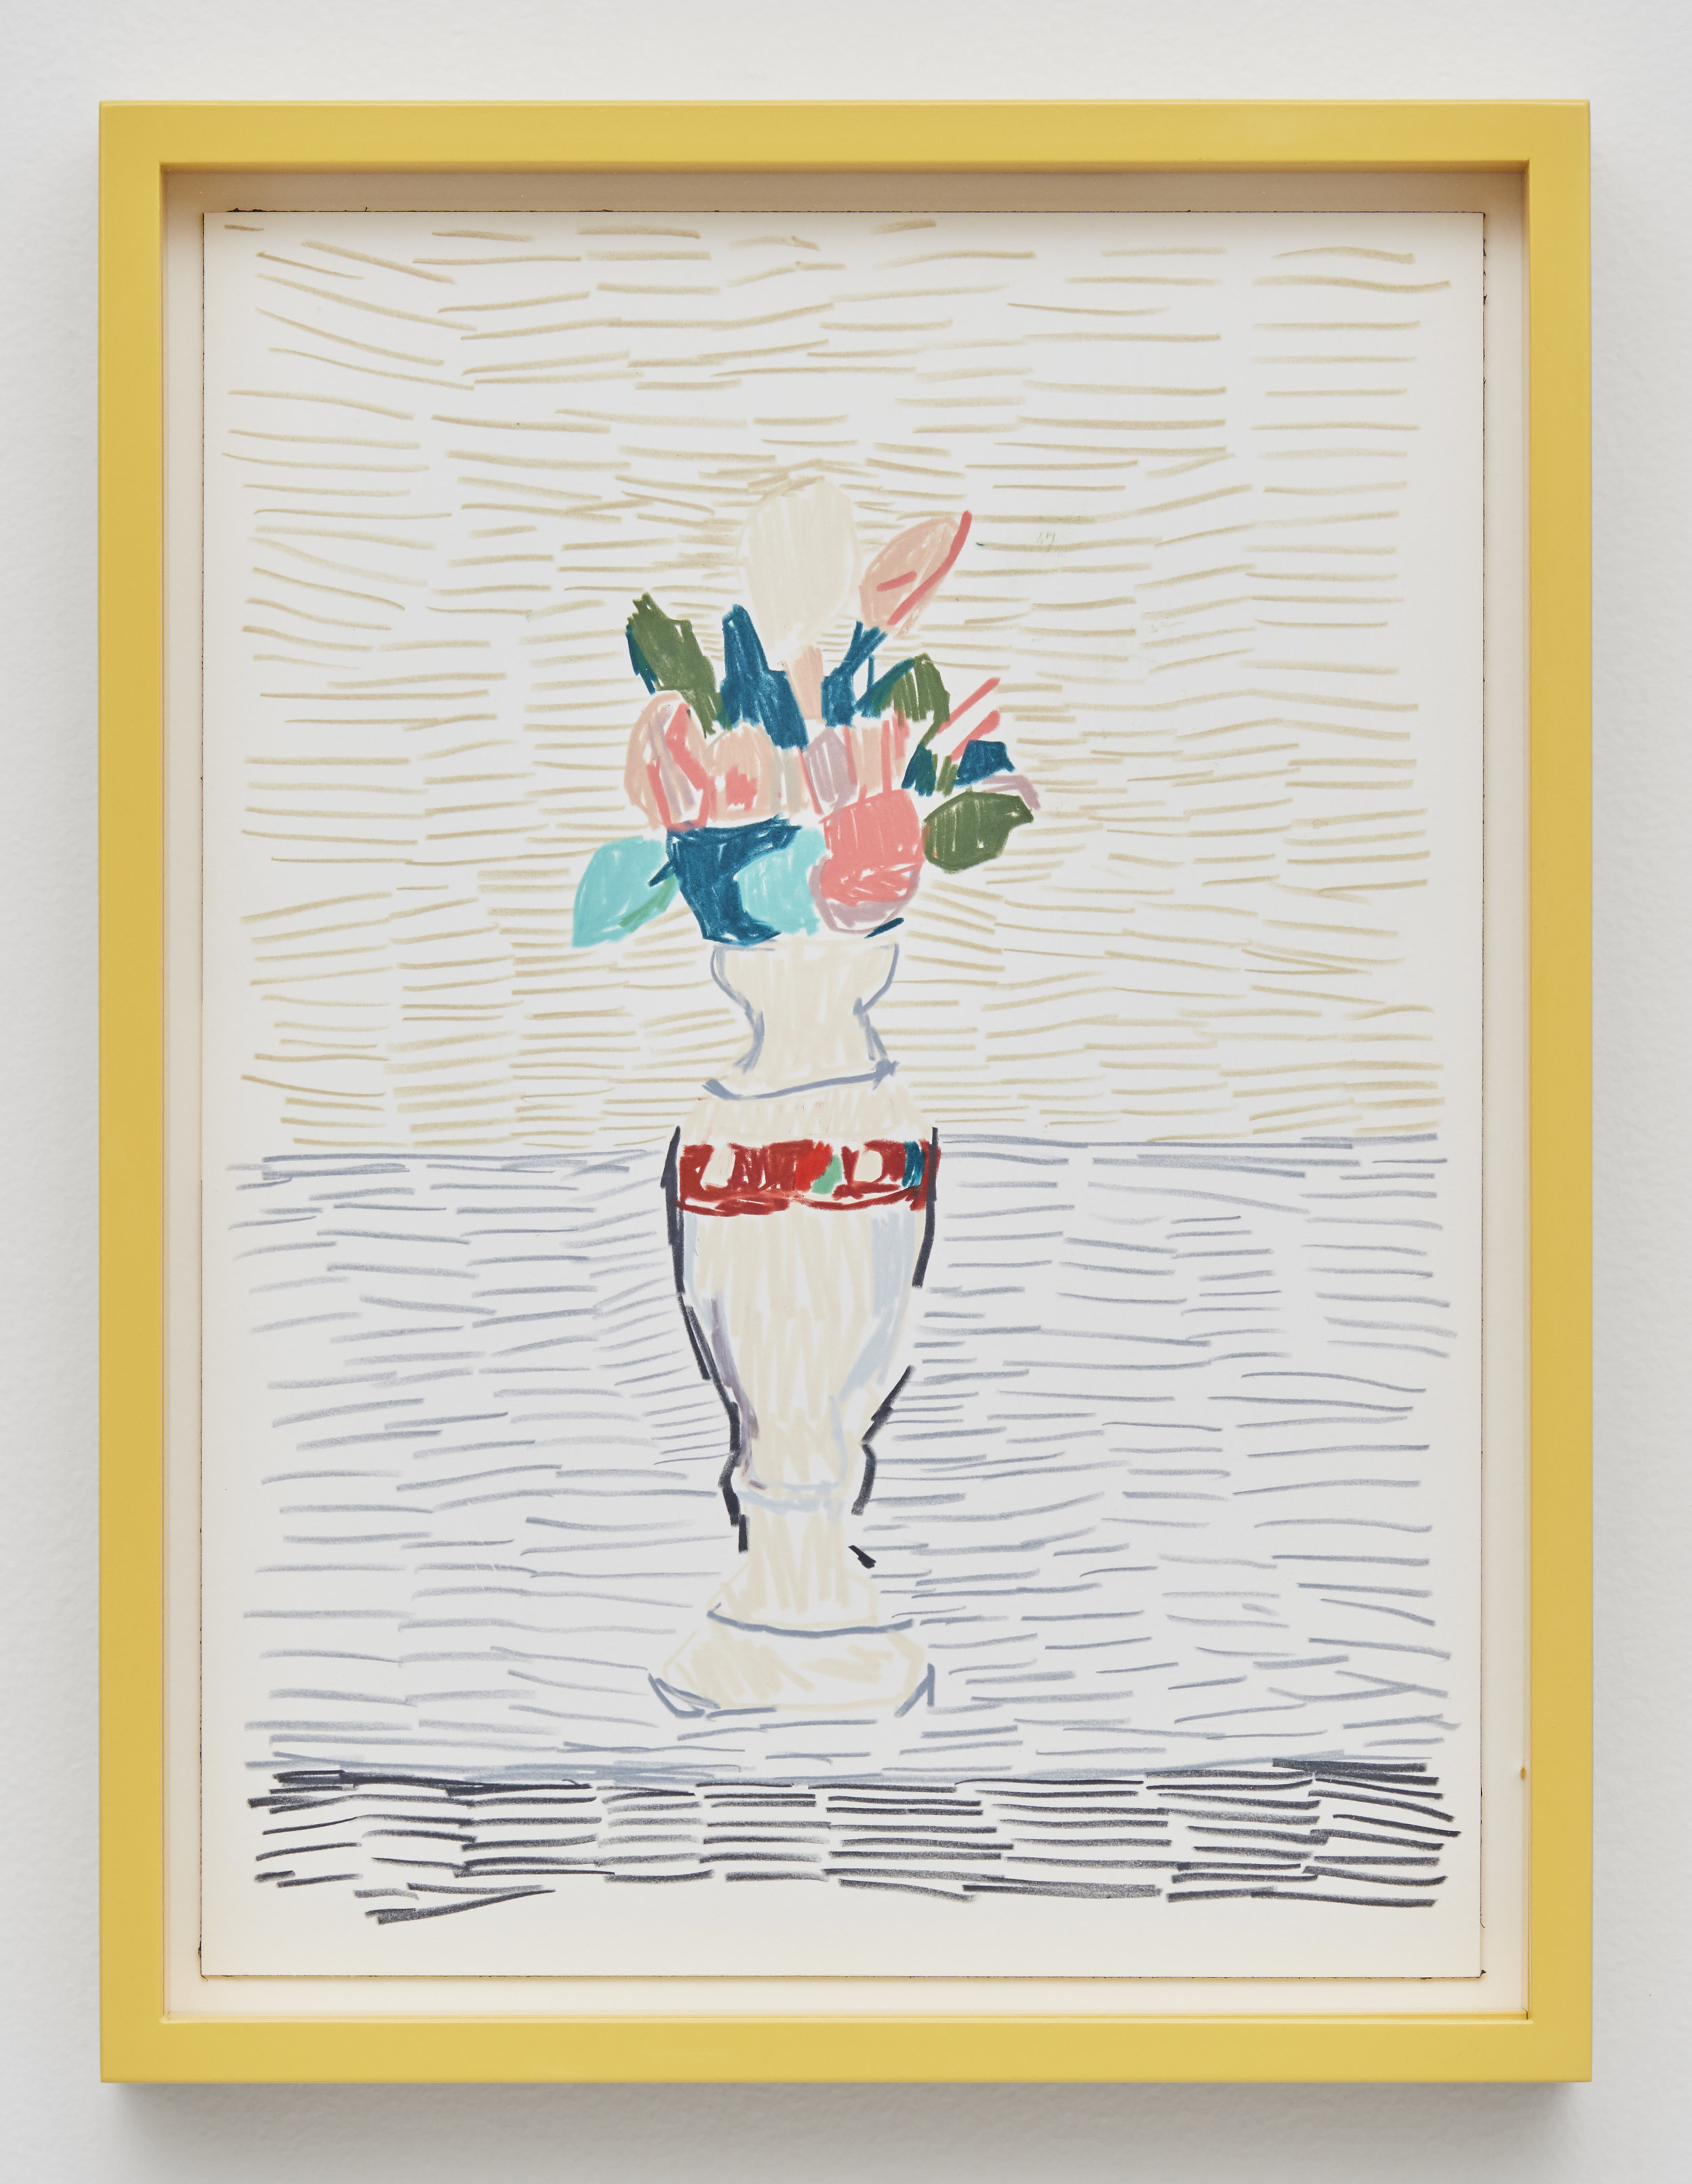 Morandi Flowers, 2017 colored pencil and ink on paper 40 x 30 cm - 15 3/4 x 11 13/16 inches (framed)